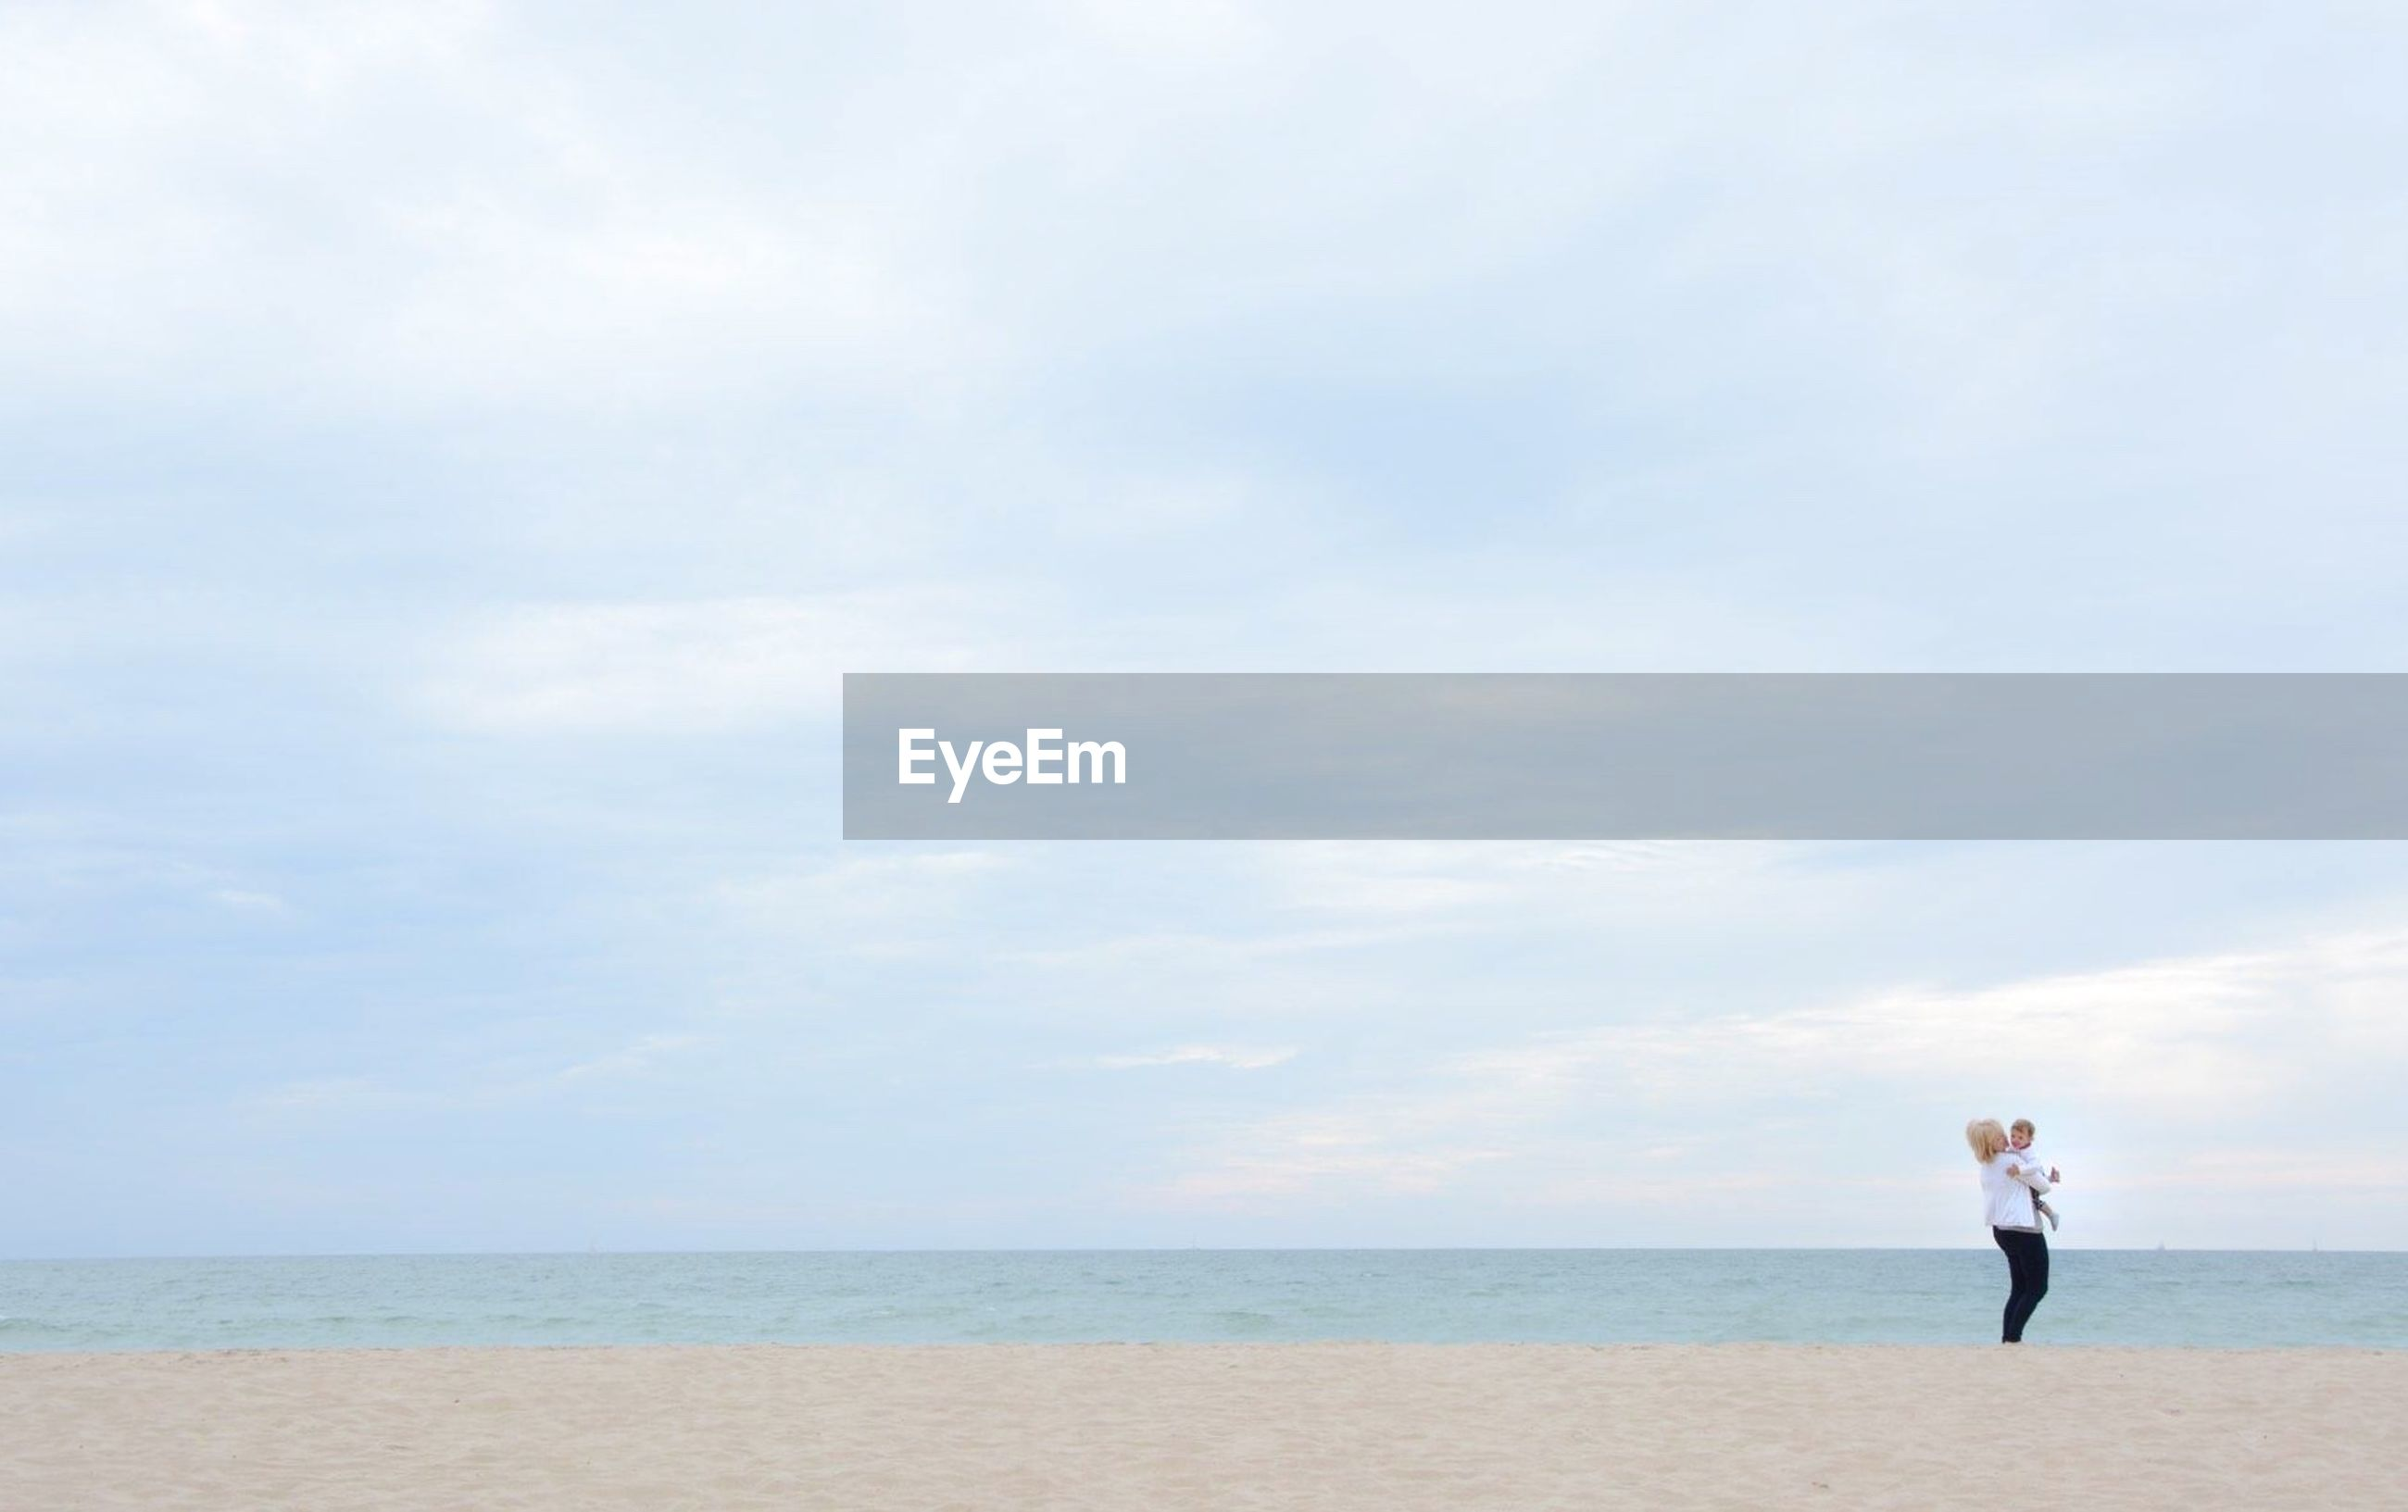 sea, horizon over water, beach, water, sky, lifestyles, leisure activity, full length, shore, tranquility, tranquil scene, scenics, standing, beauty in nature, rear view, nature, sand, vacations